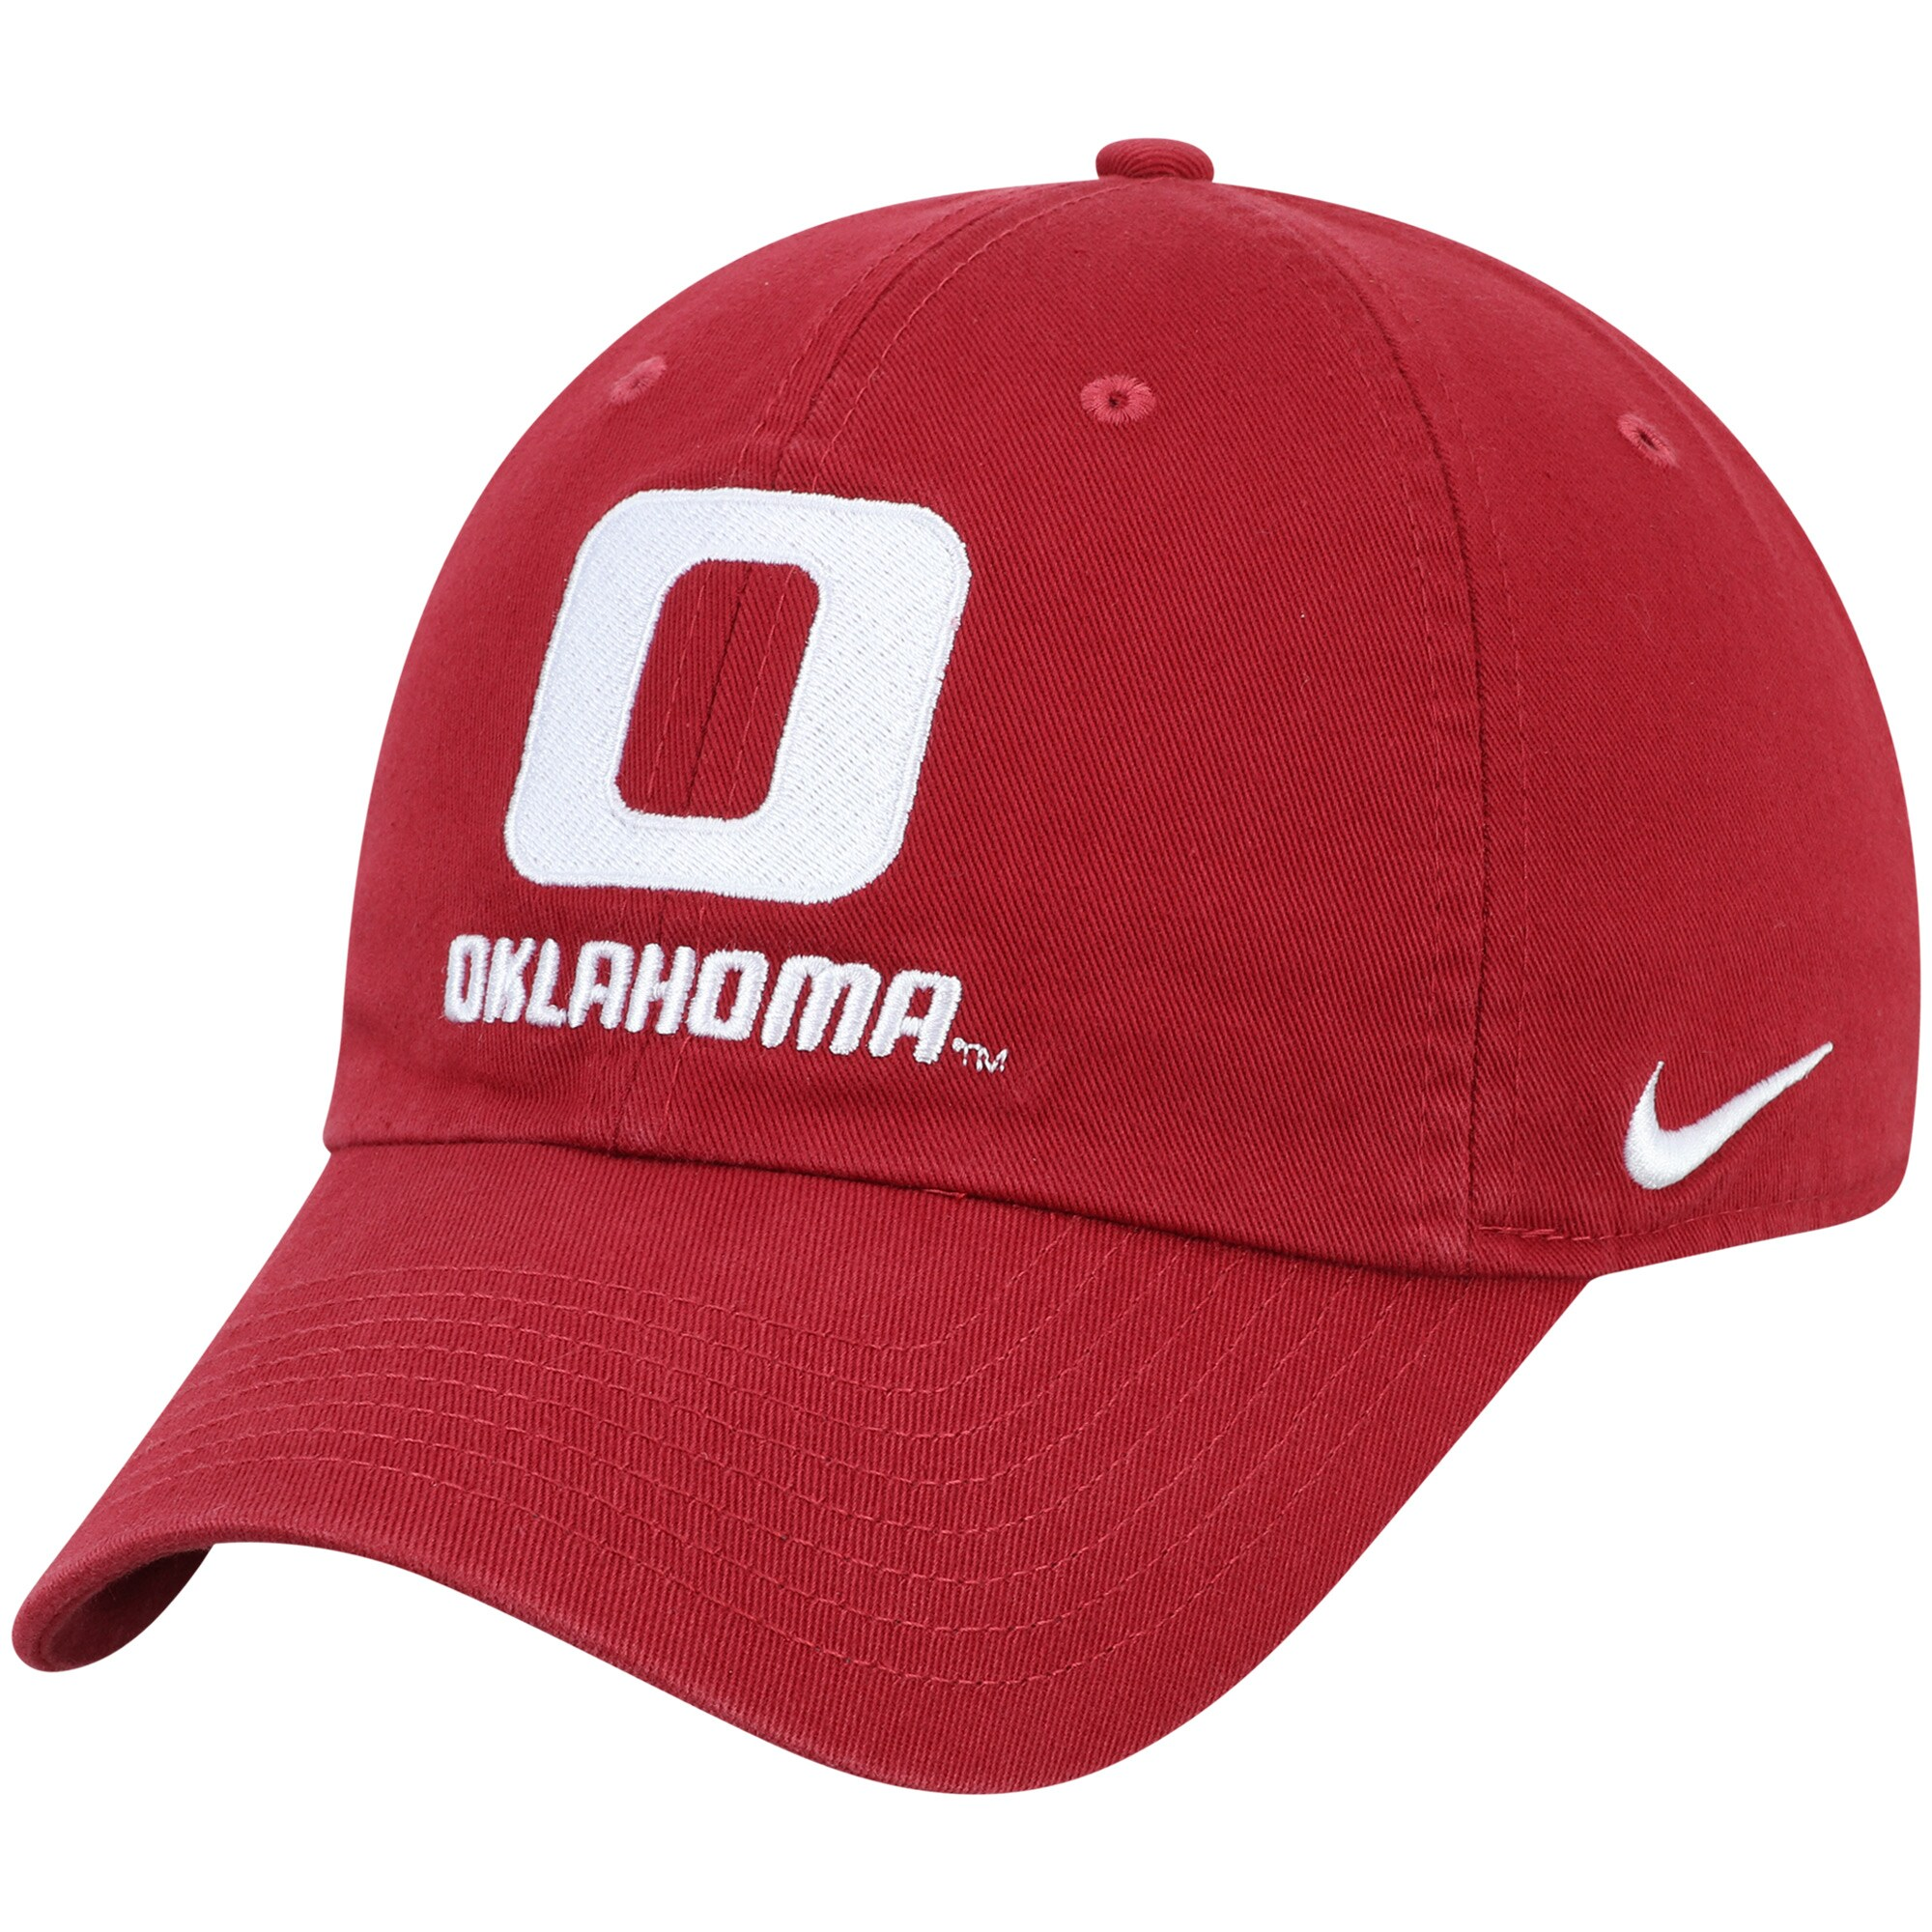 Oklahoma Sooners Nike Heritage 86 Performance Adjustable Hat - Crimson